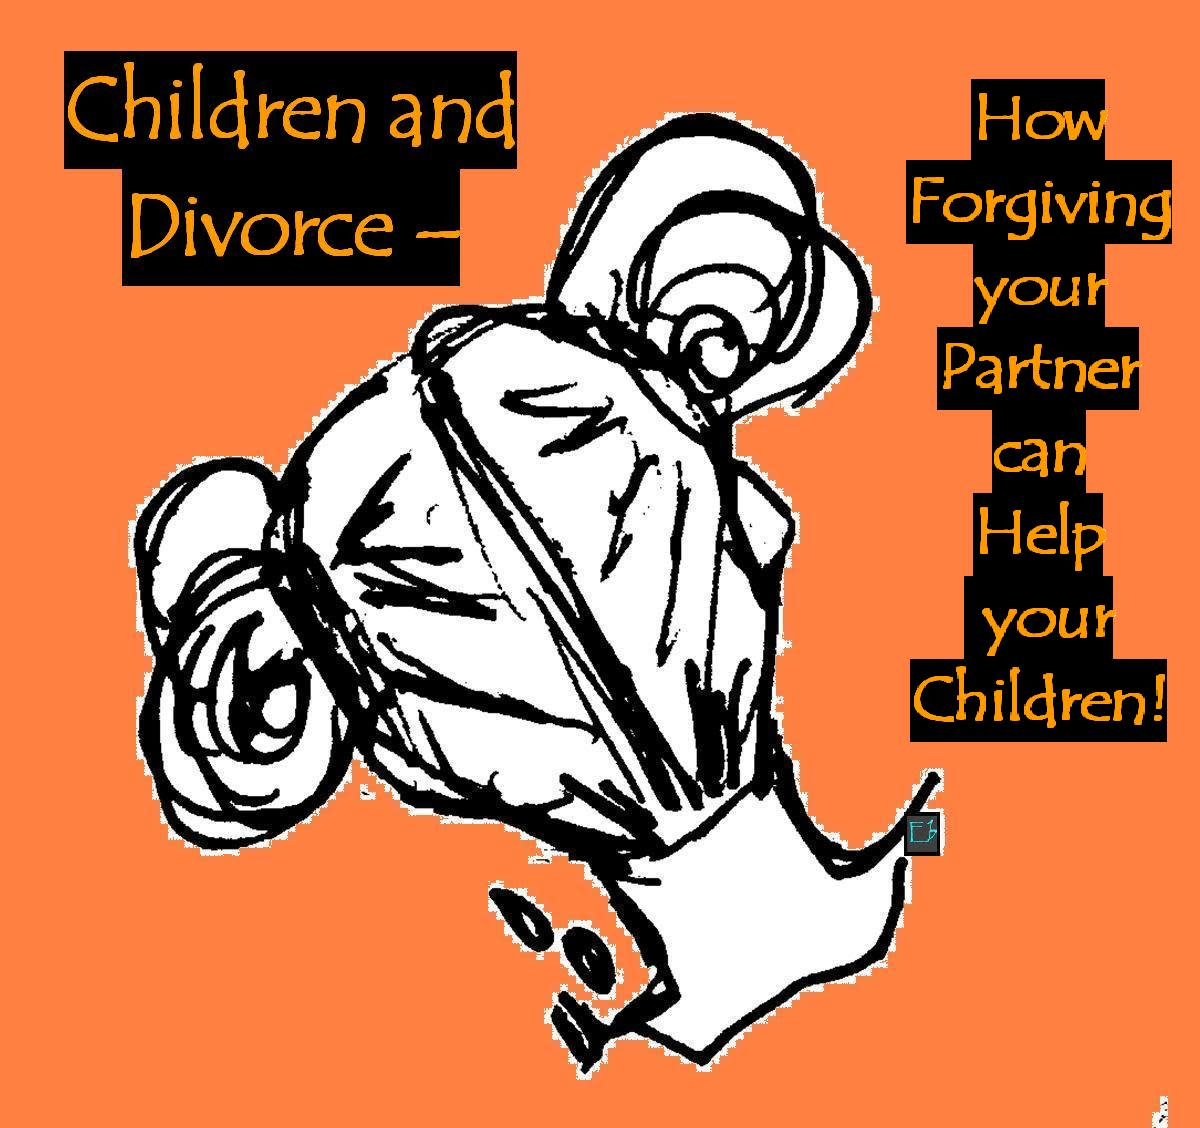 How forgiving your Ex can help your children